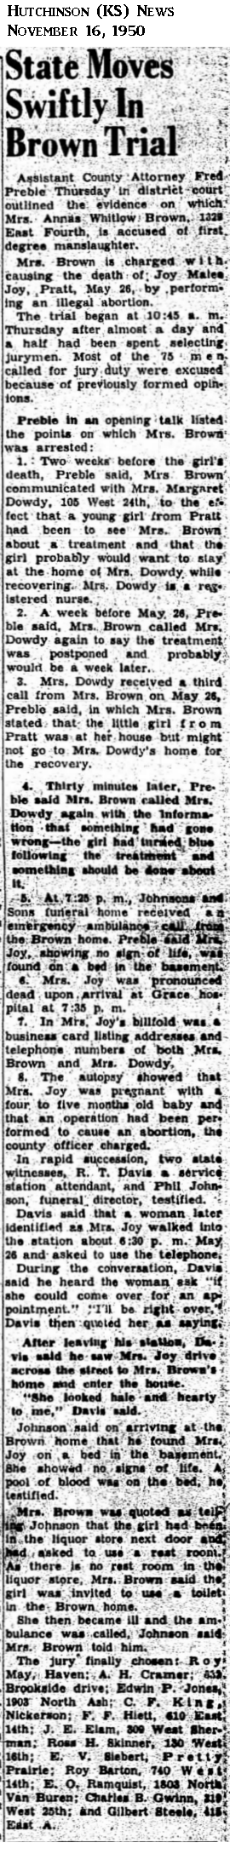 JoyJoyHutchinsonKSNews16Nov1950.png